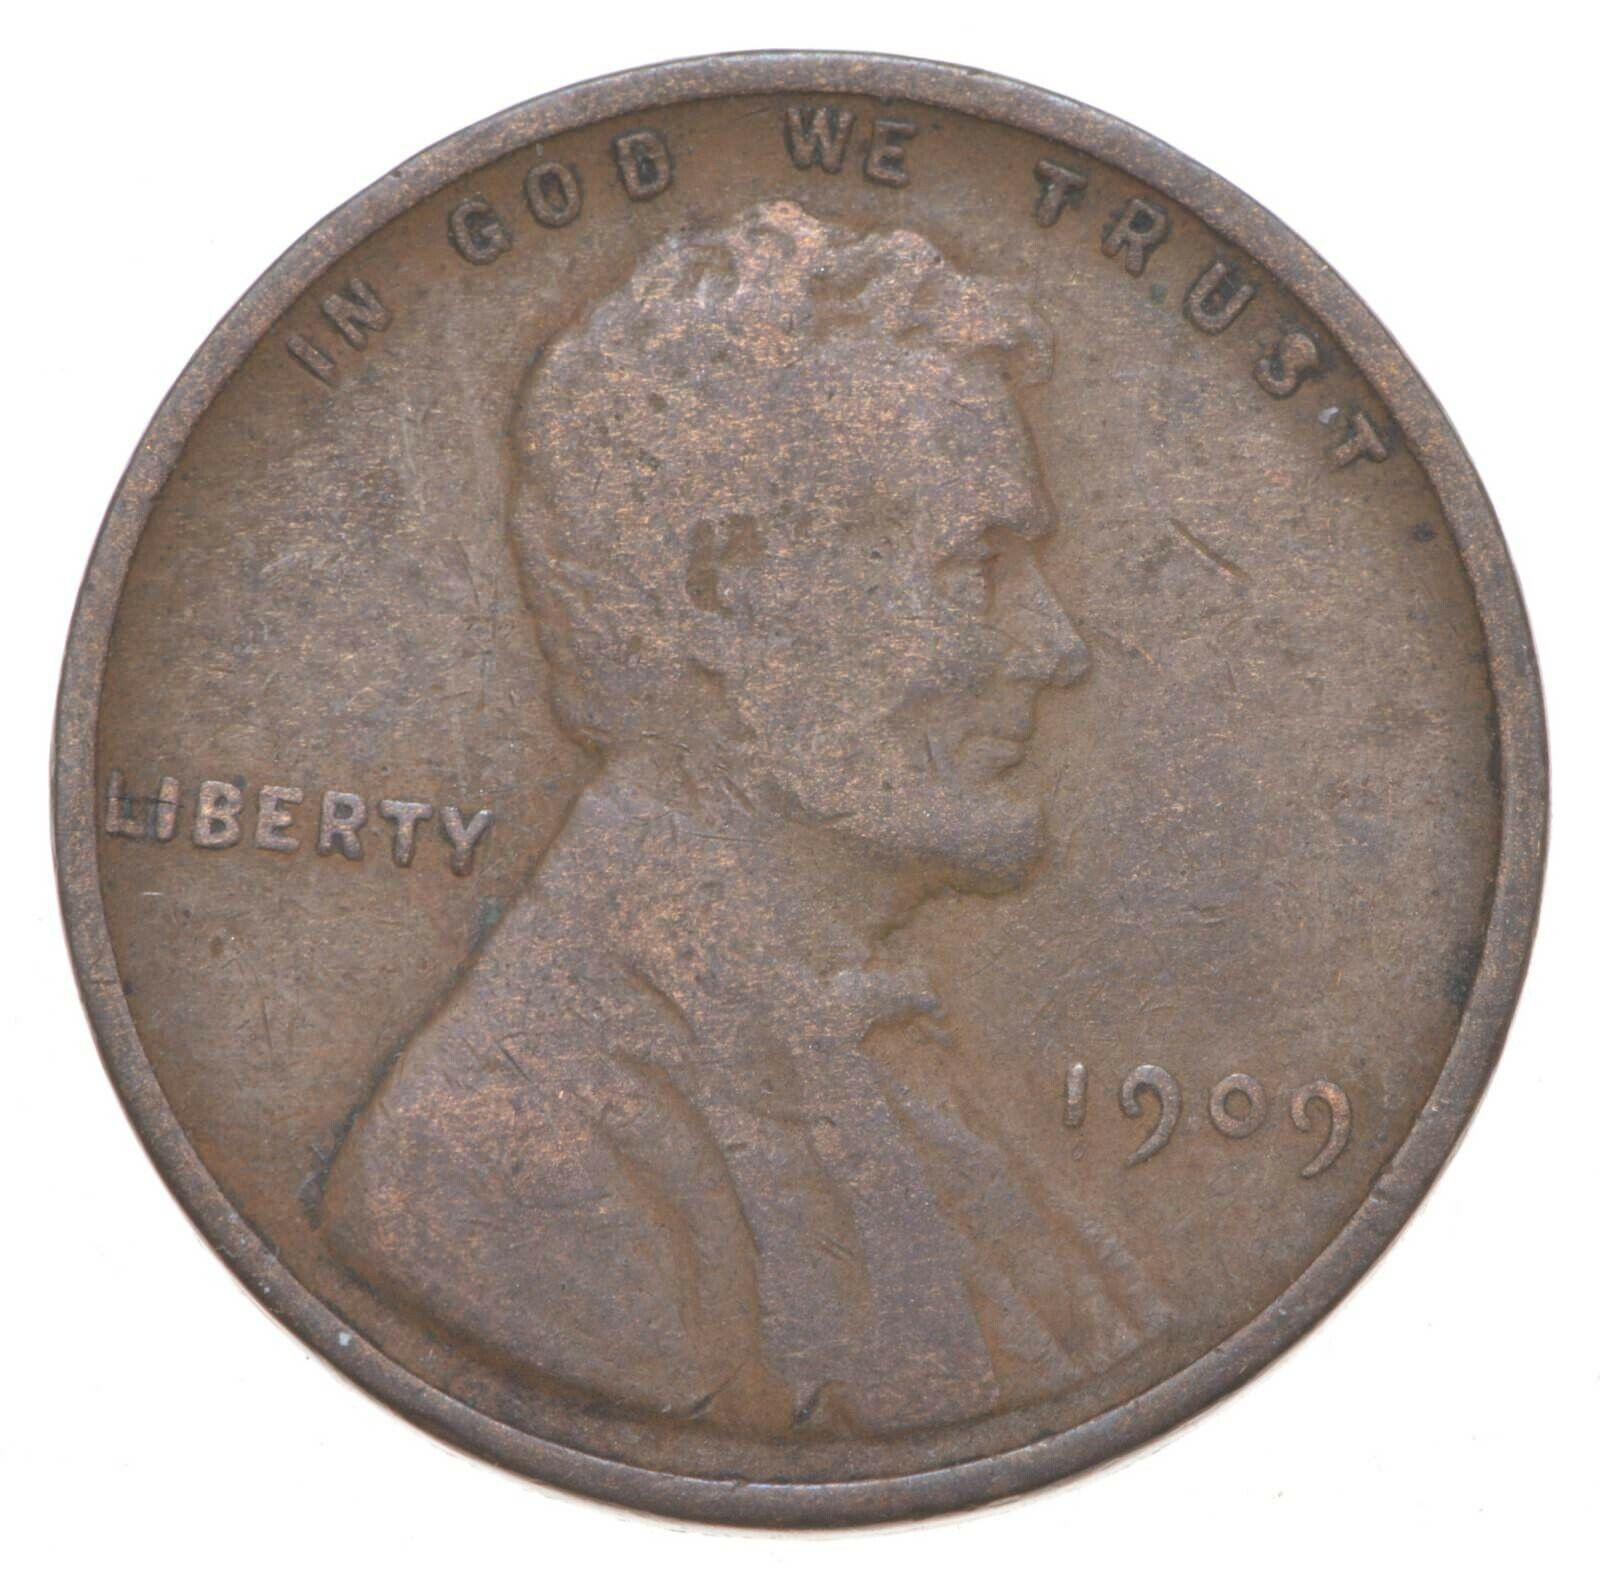 1909 Lincoln Wheat Cent - Walker Coin Collection 906 - $2.25